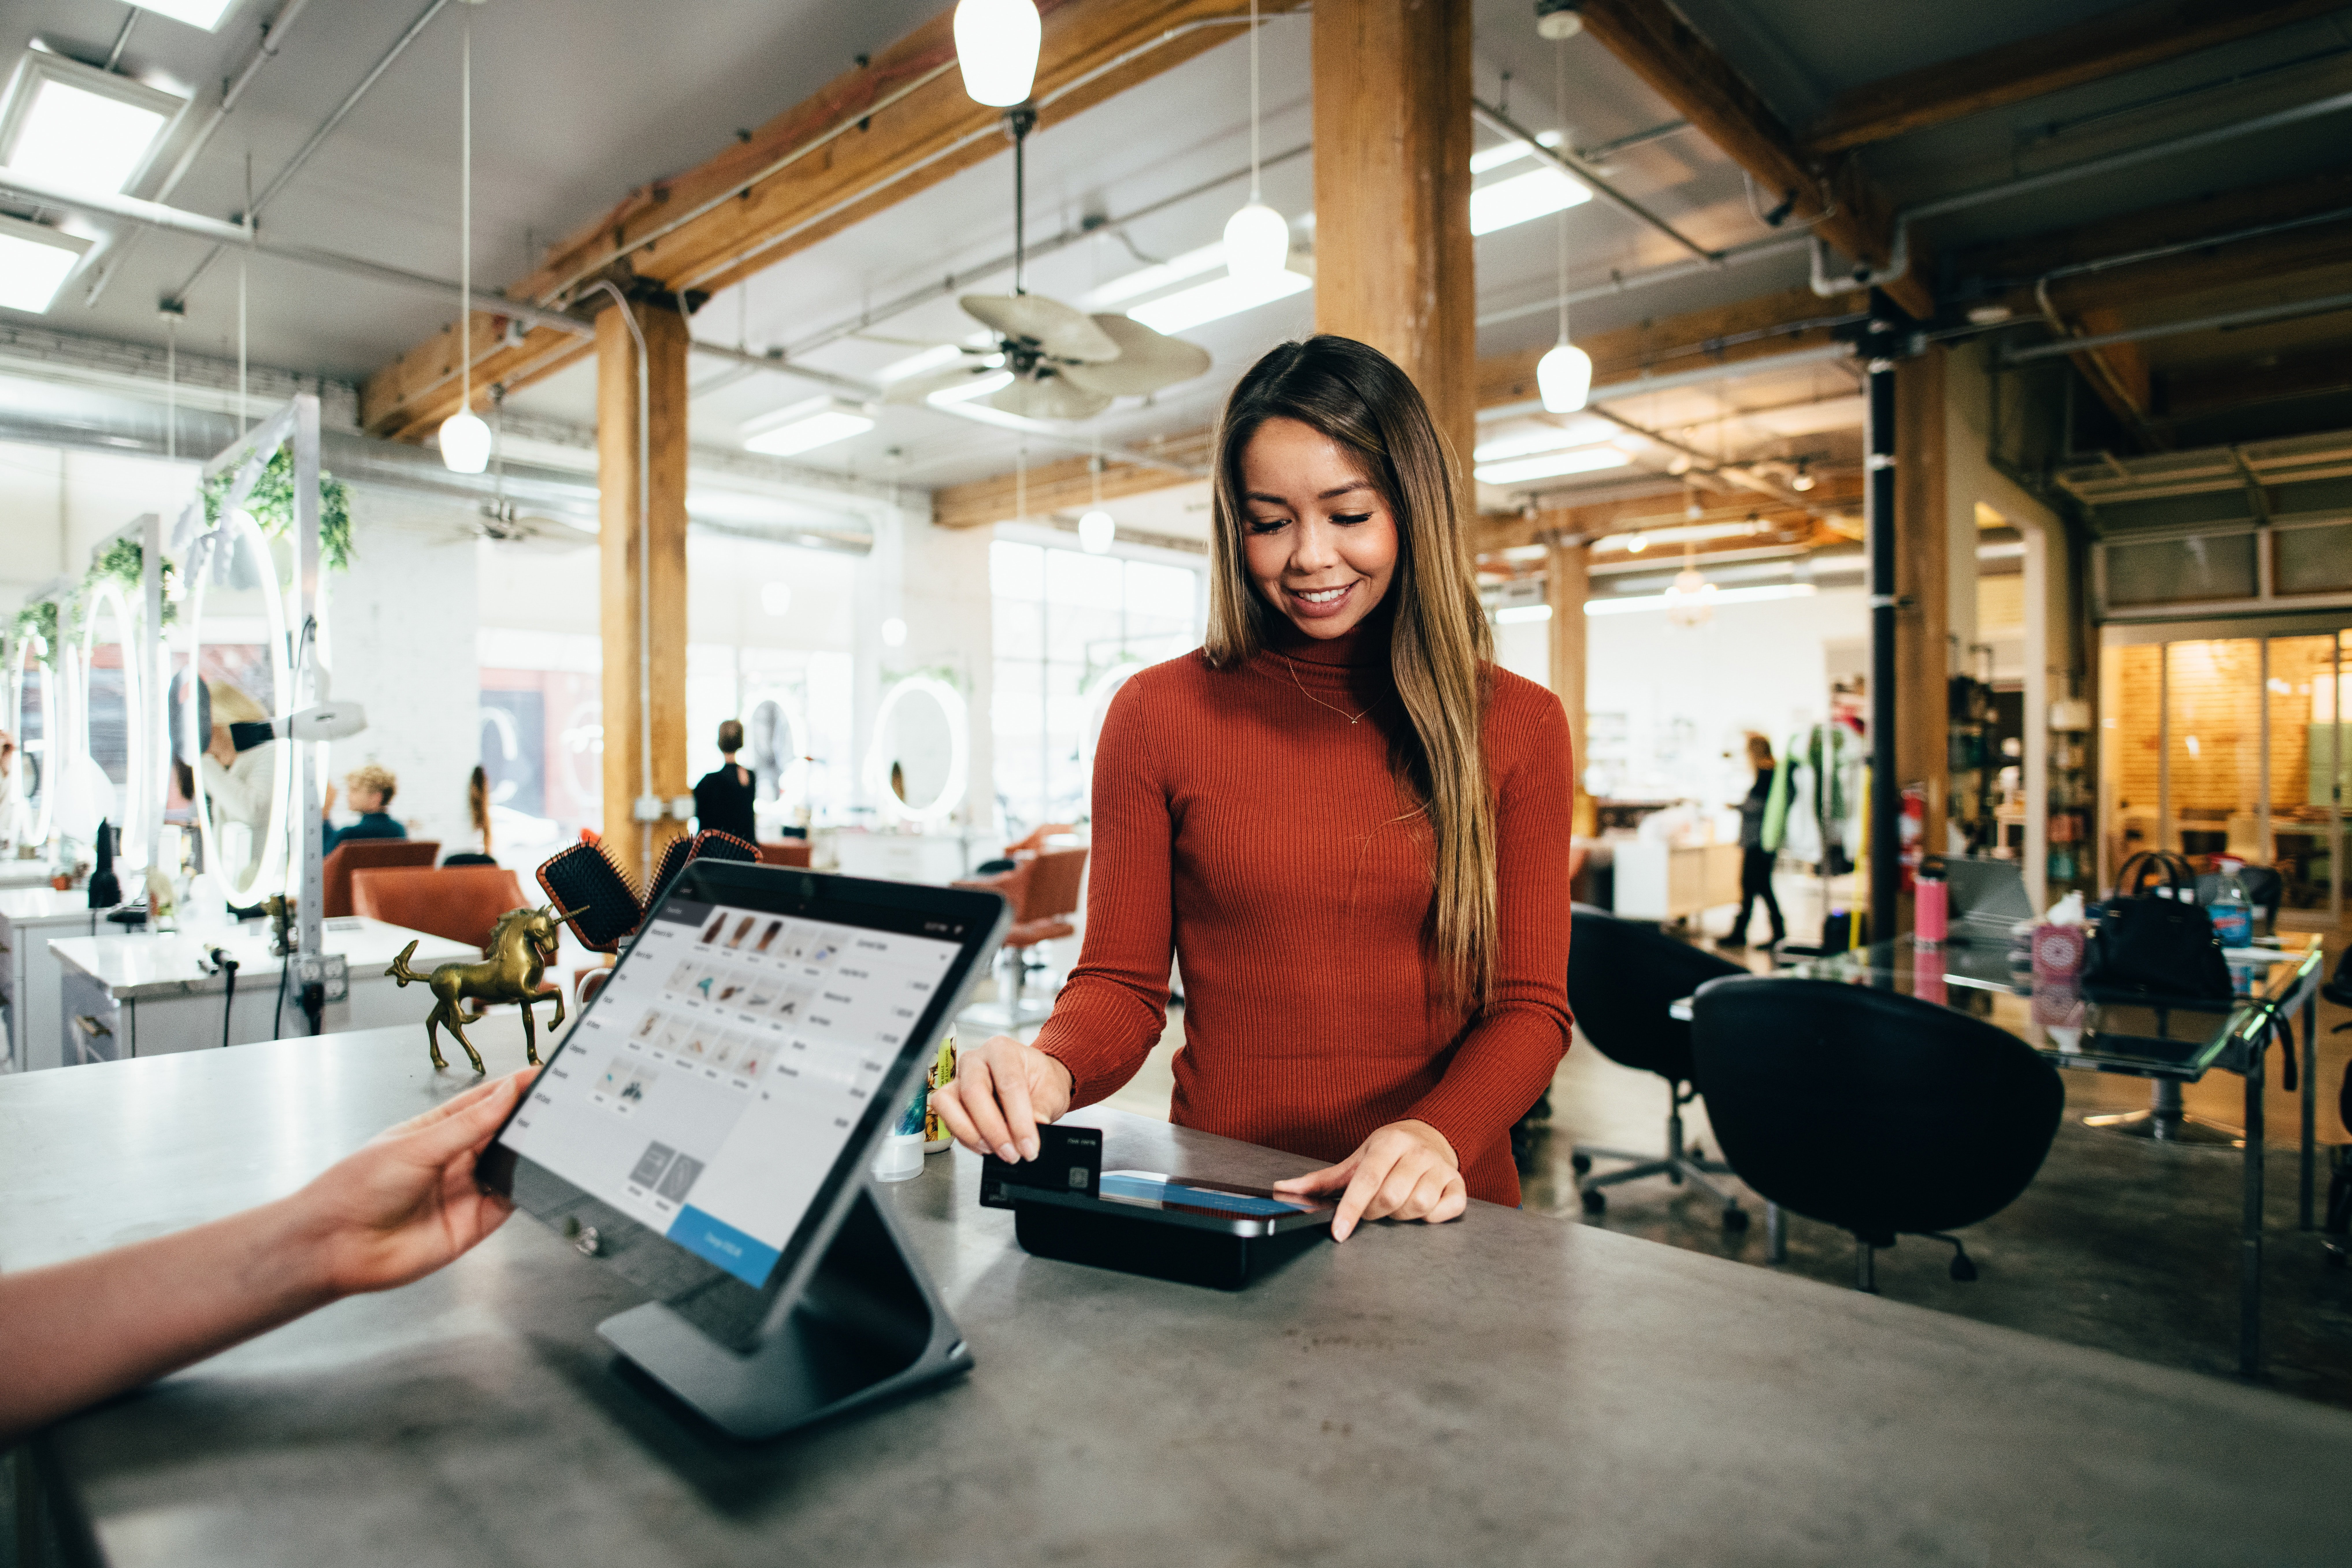 A lady at a counter swiping her card | Source: Unsplash.com